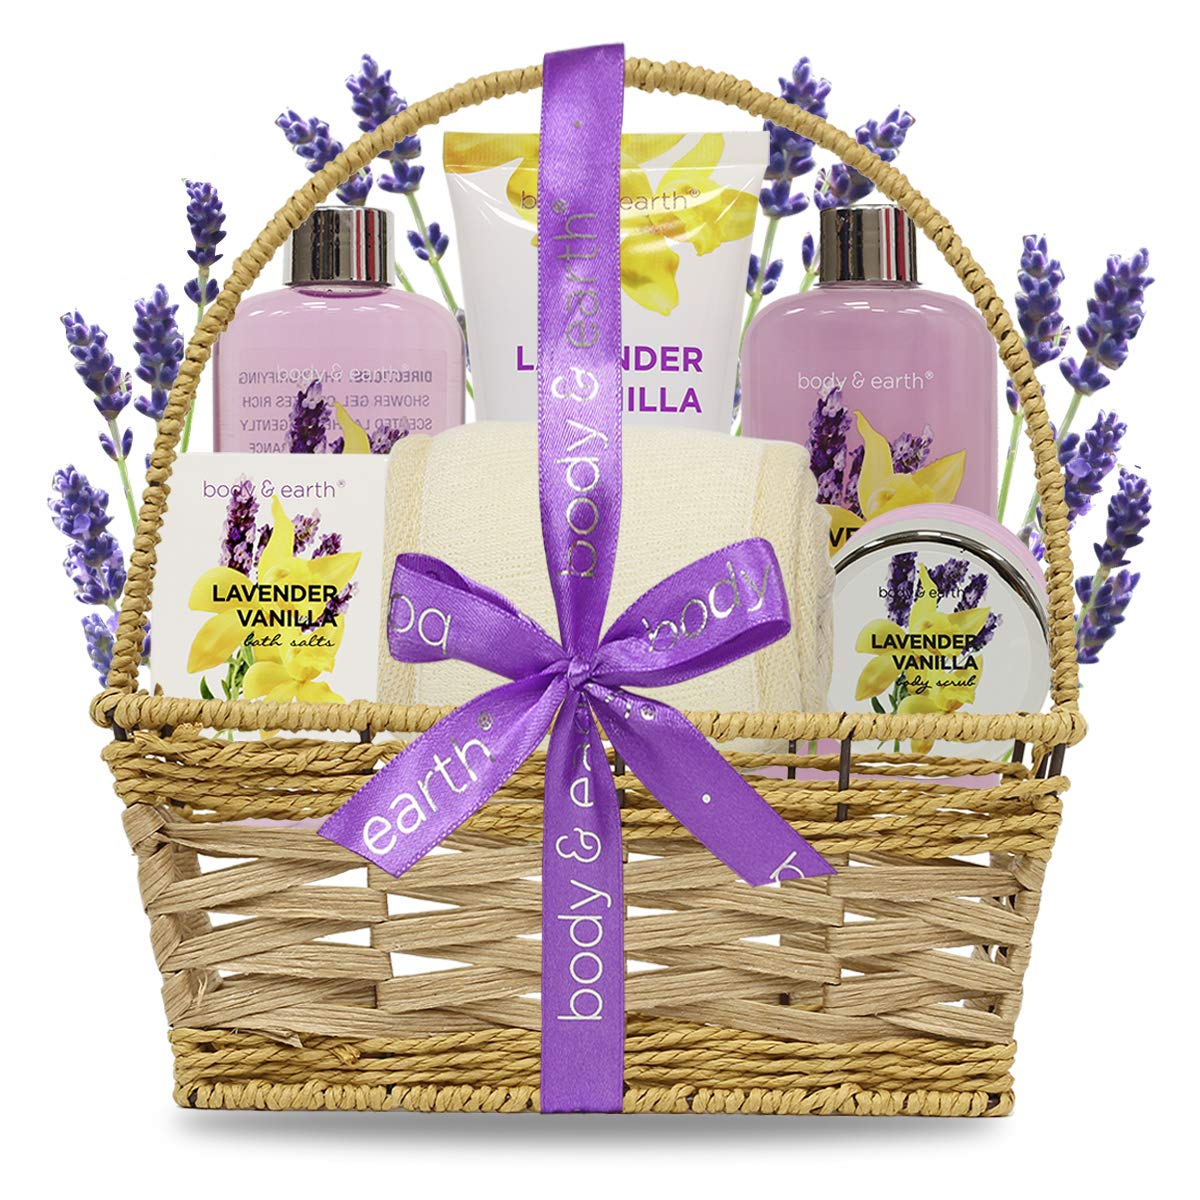 Spa Basket Gift Set for Women: Relaxing at Home Spa Bath Kit - Lavender and Vanilla Scent - Includes Shower Gel, Bubble Bath, Body Lotion, Bath Salts, Body Scrub, Back Scrubber